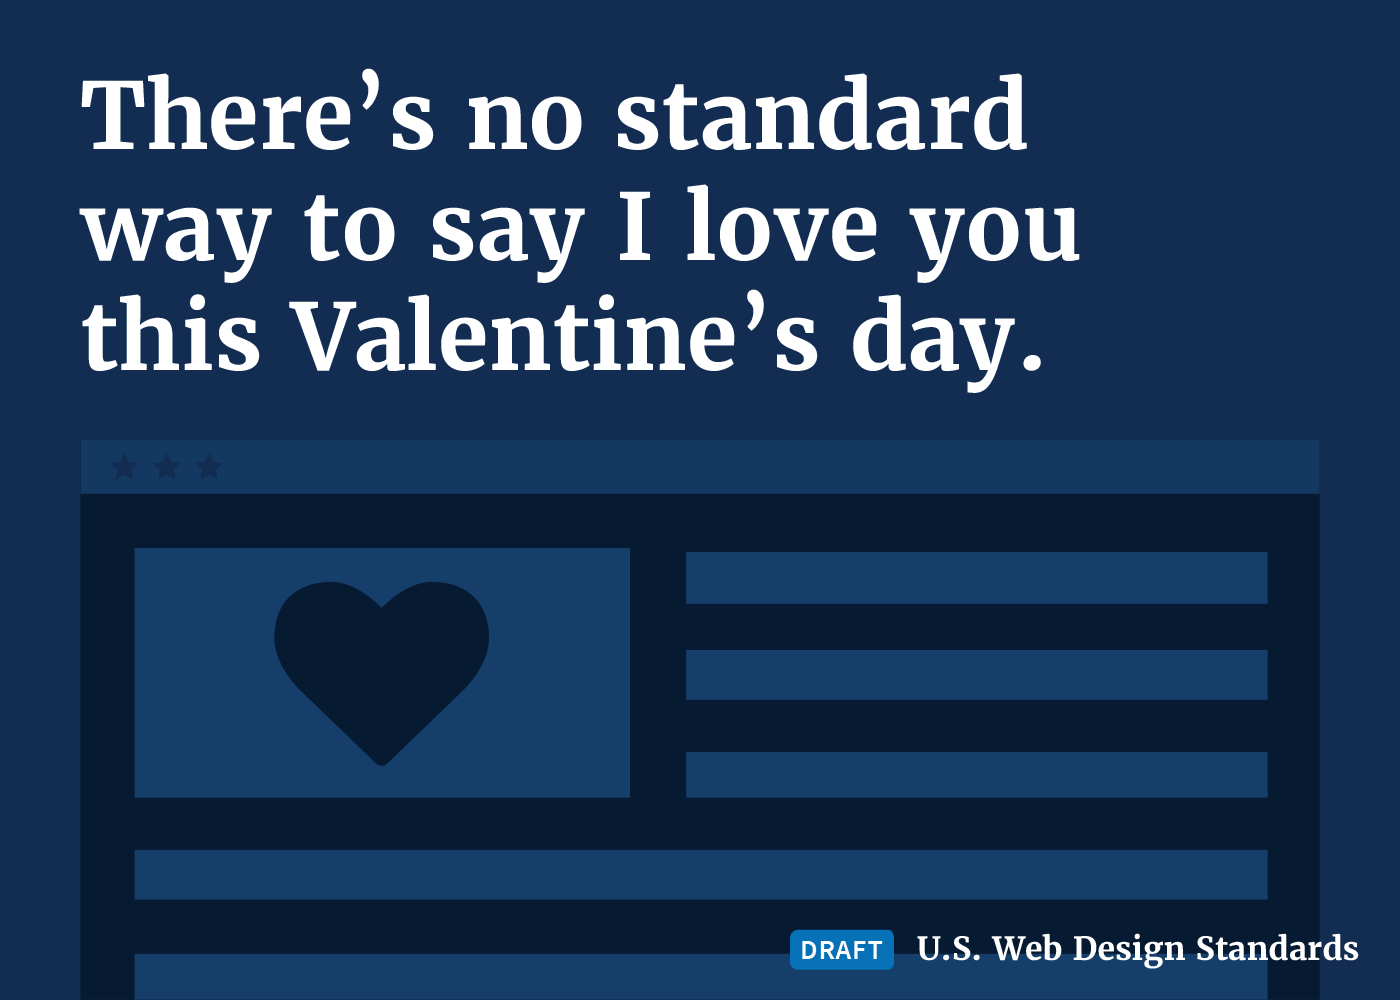 A valentines message floating above the draft web standards logo.